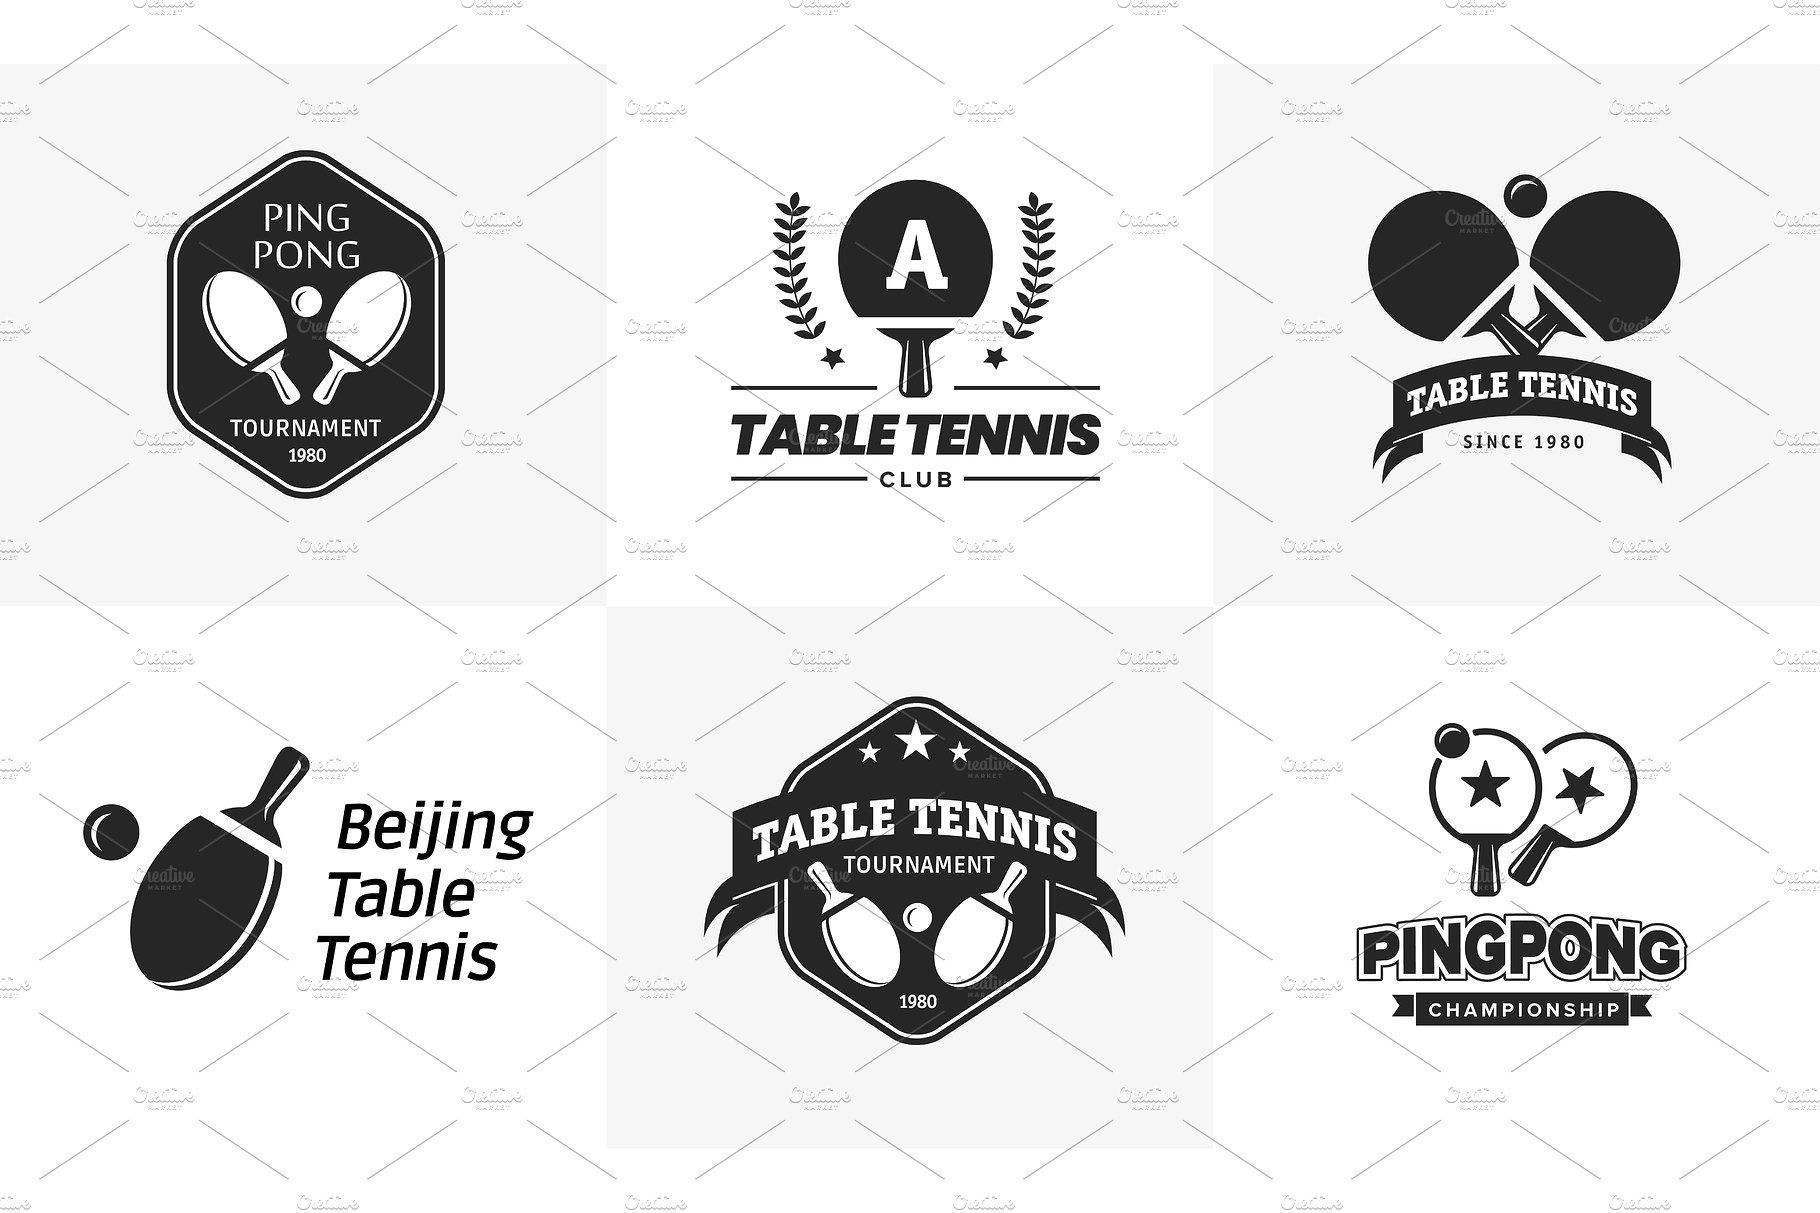 Set Of Vintage Table Tennis Logos And Badges Collection Of The Ping Pong Championship Labels Table Tennis Vintage Table Ping Pong